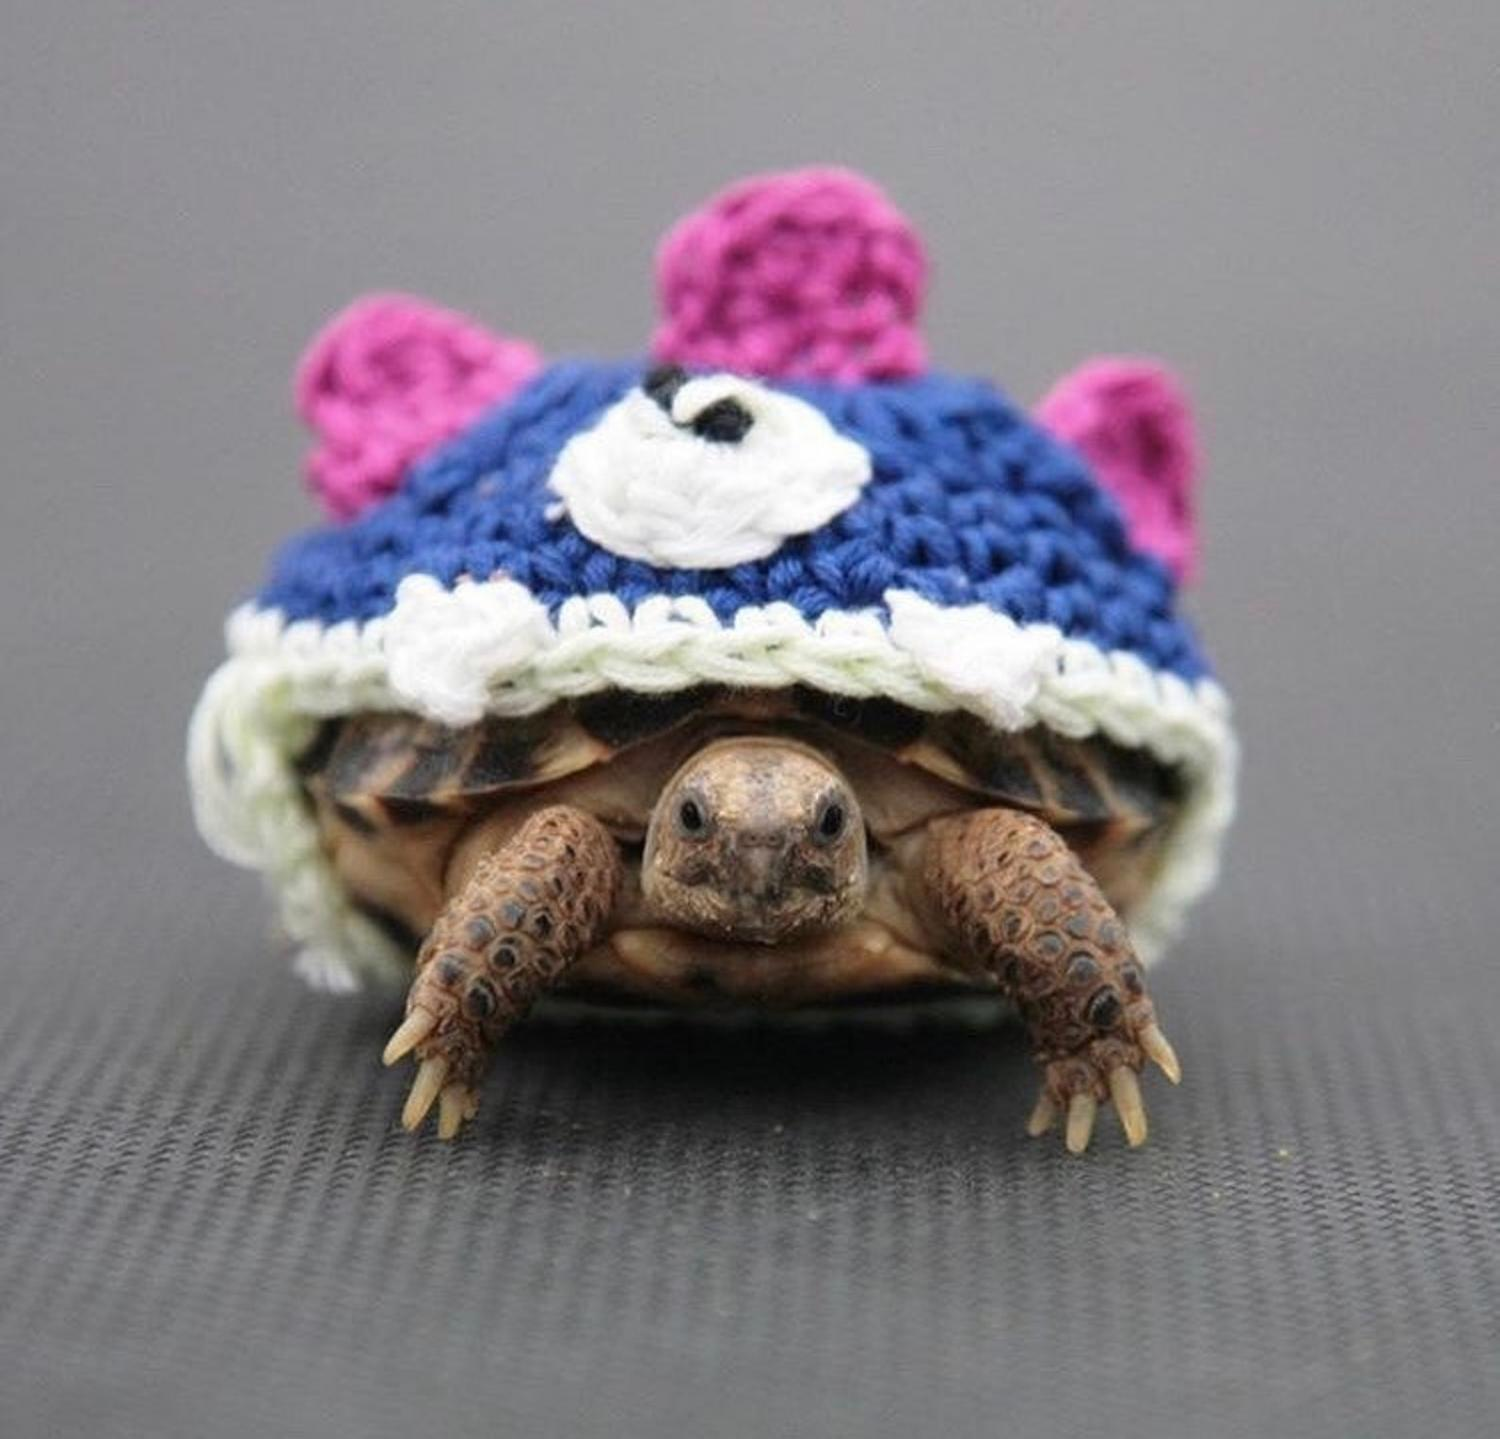 Crochet Turtle Sweater - Monster tortoise cozy